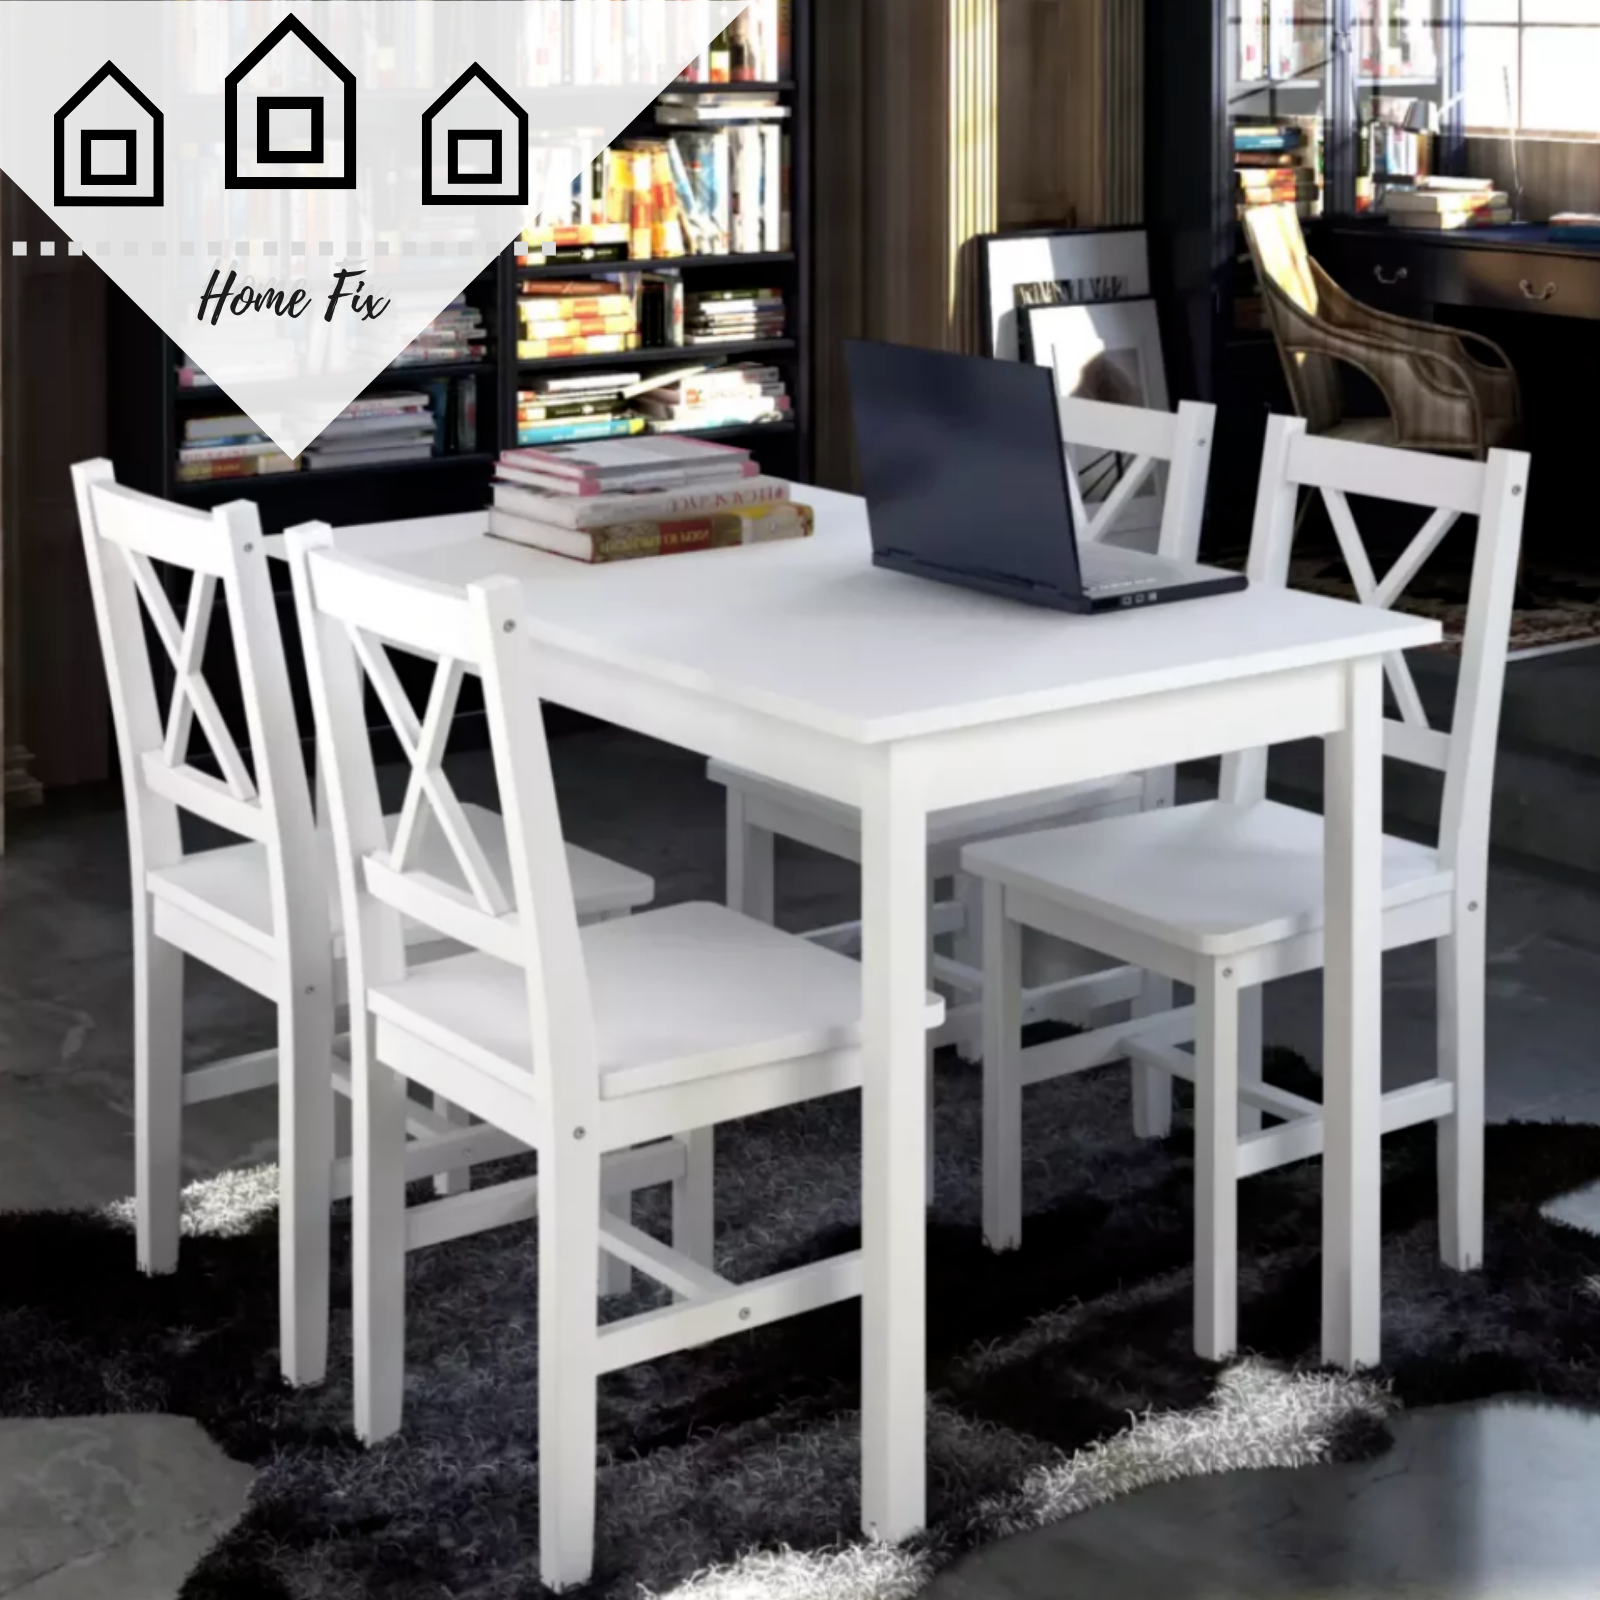 Pine Wood Dining Set Solid Table Chairs Dining Tables Home Furniture